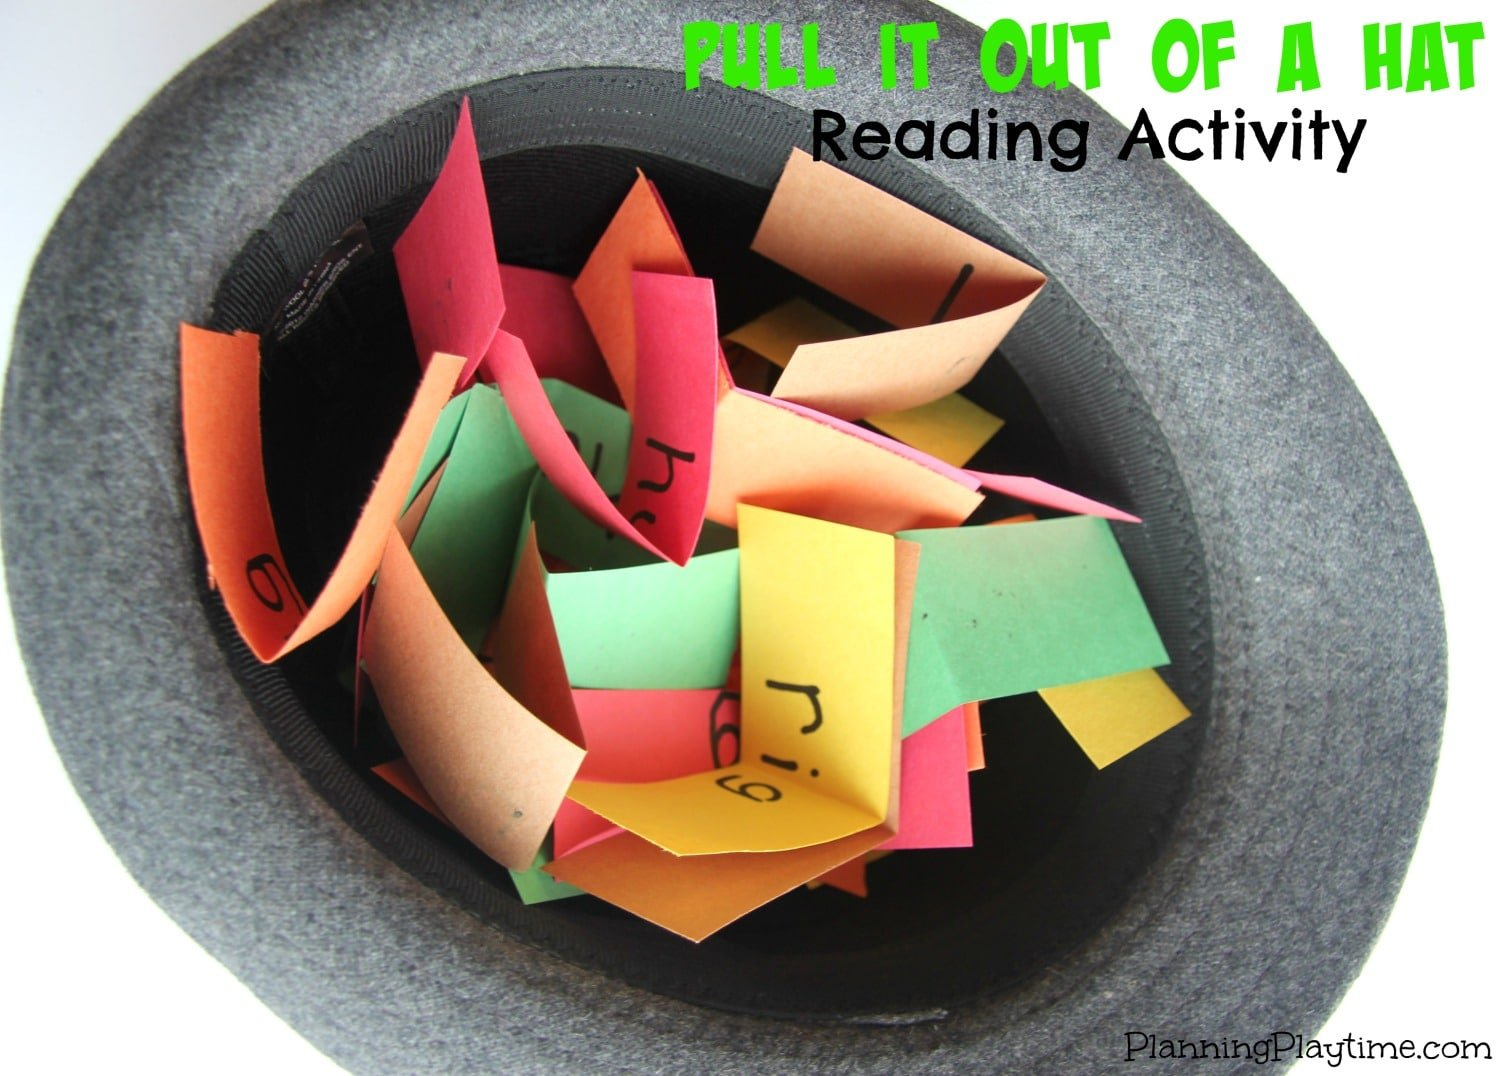 Pull It Out of a Hat Reading Activity for Kids